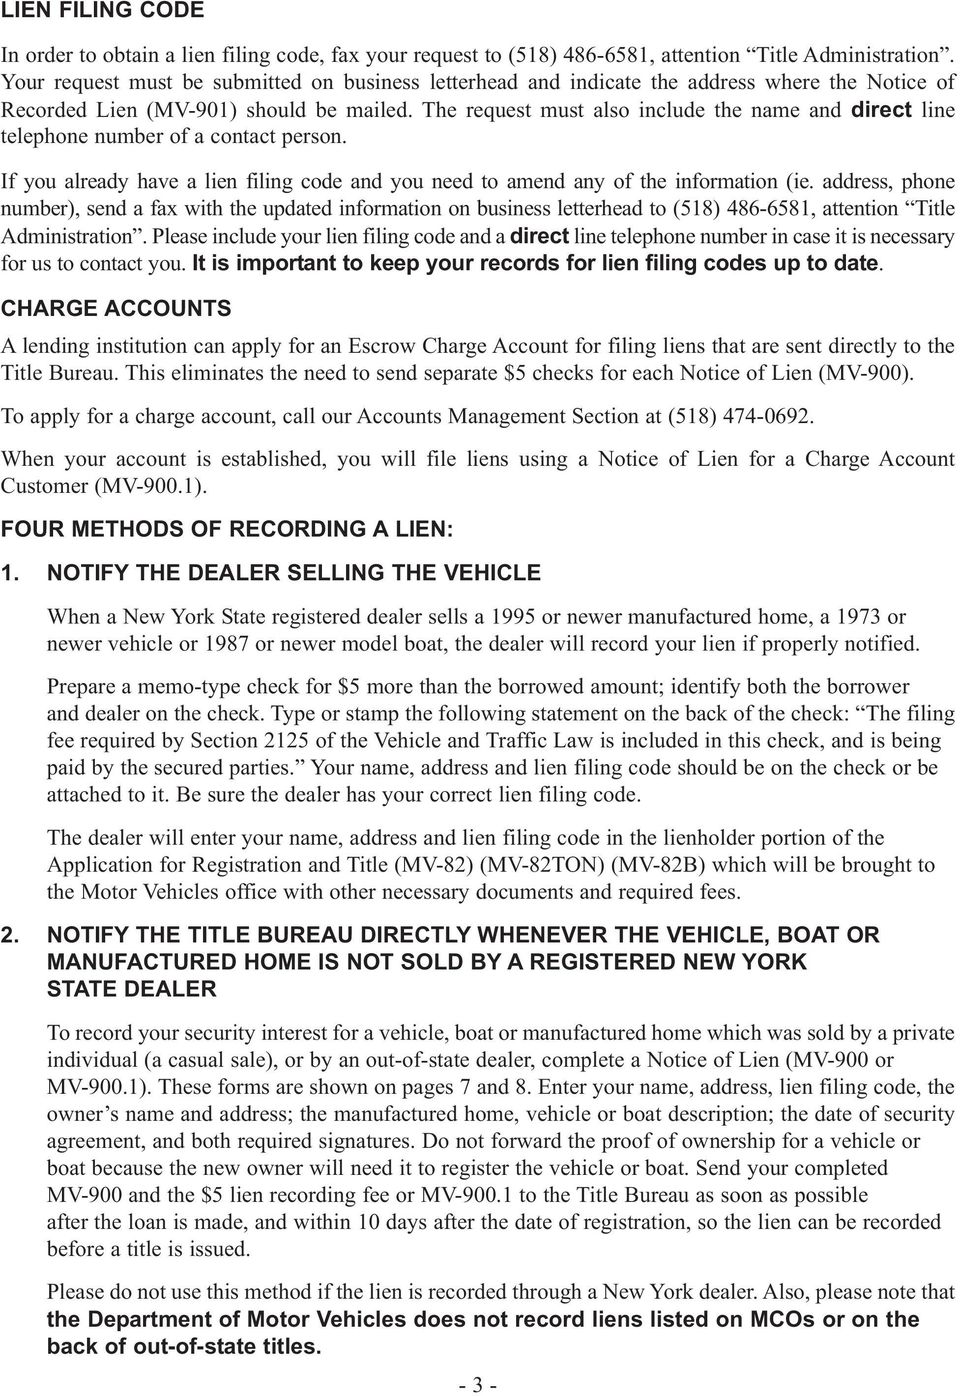 New york state department of motor vehicles pdf for New york state department of motor vehicles phone number